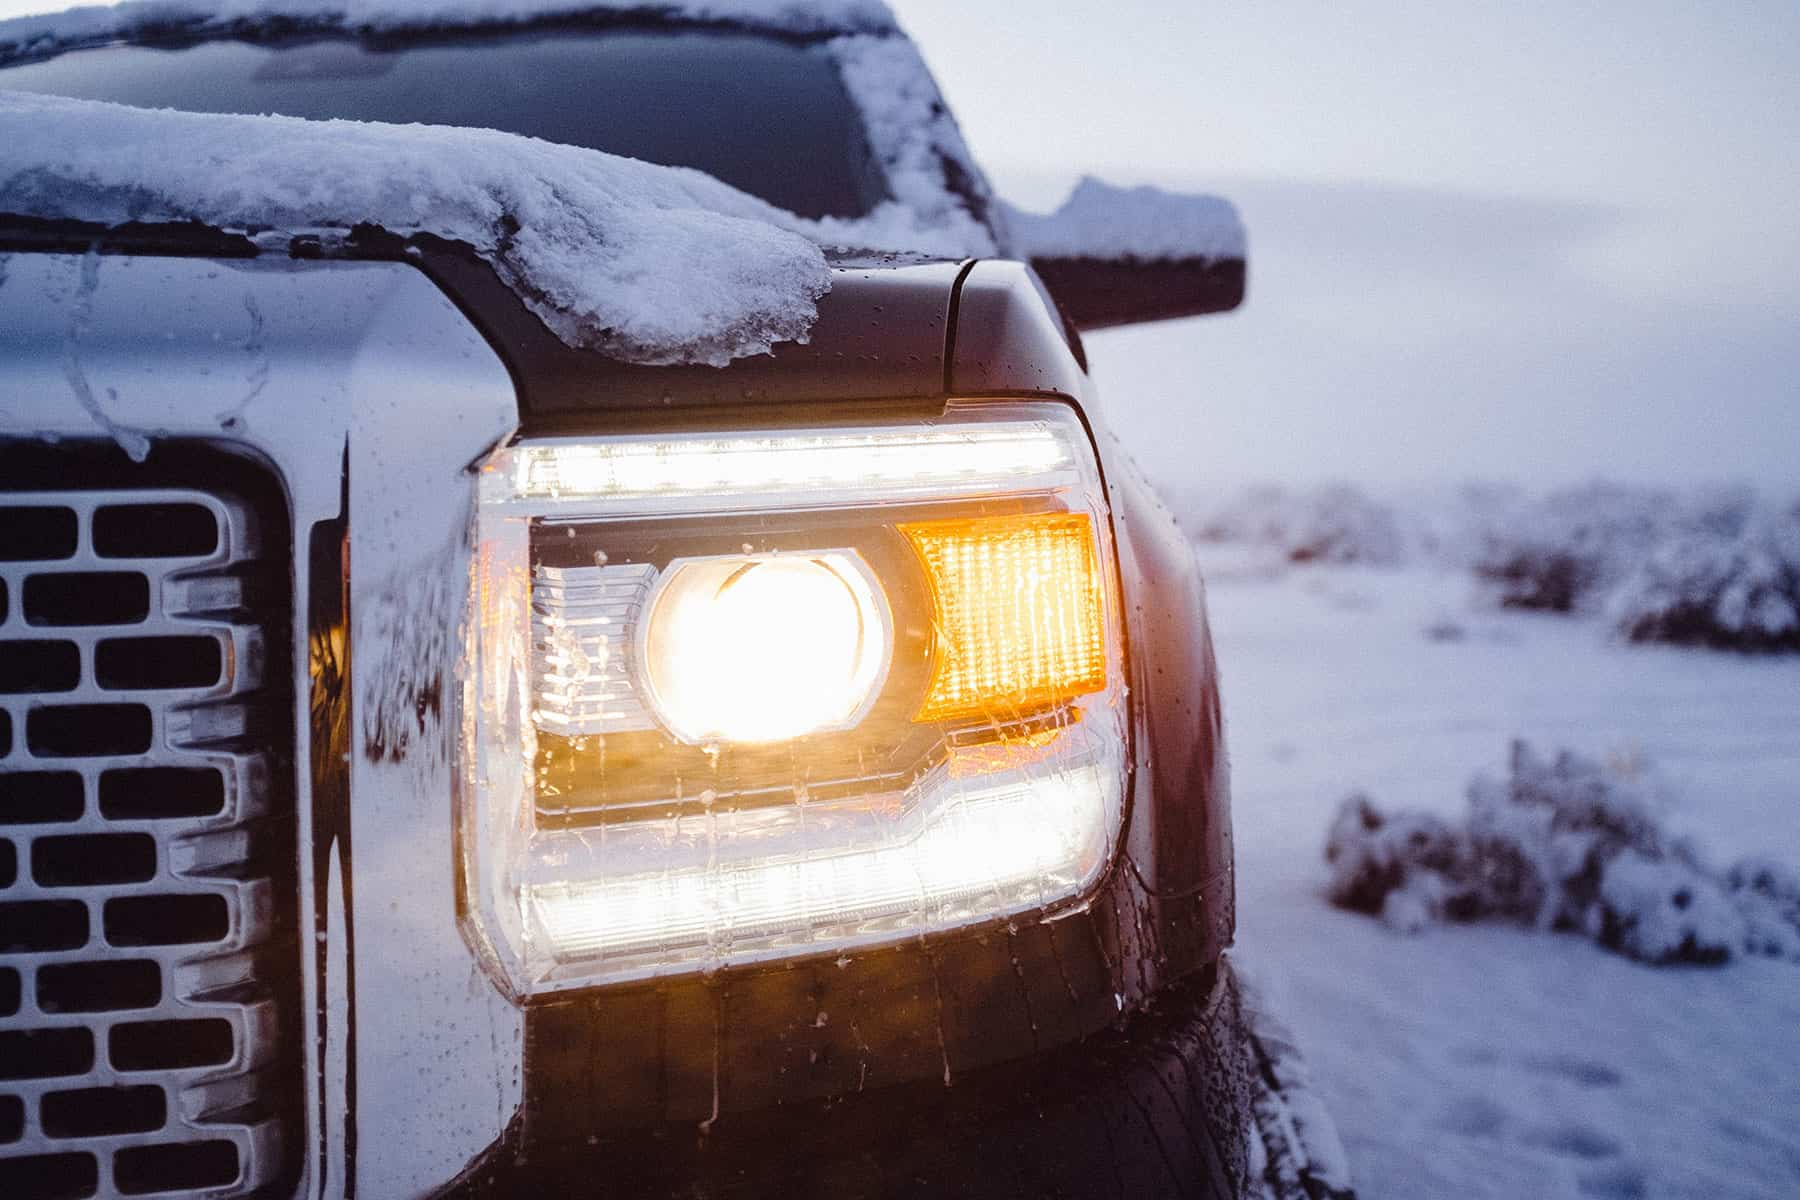 Closeup of truck in winter conditions